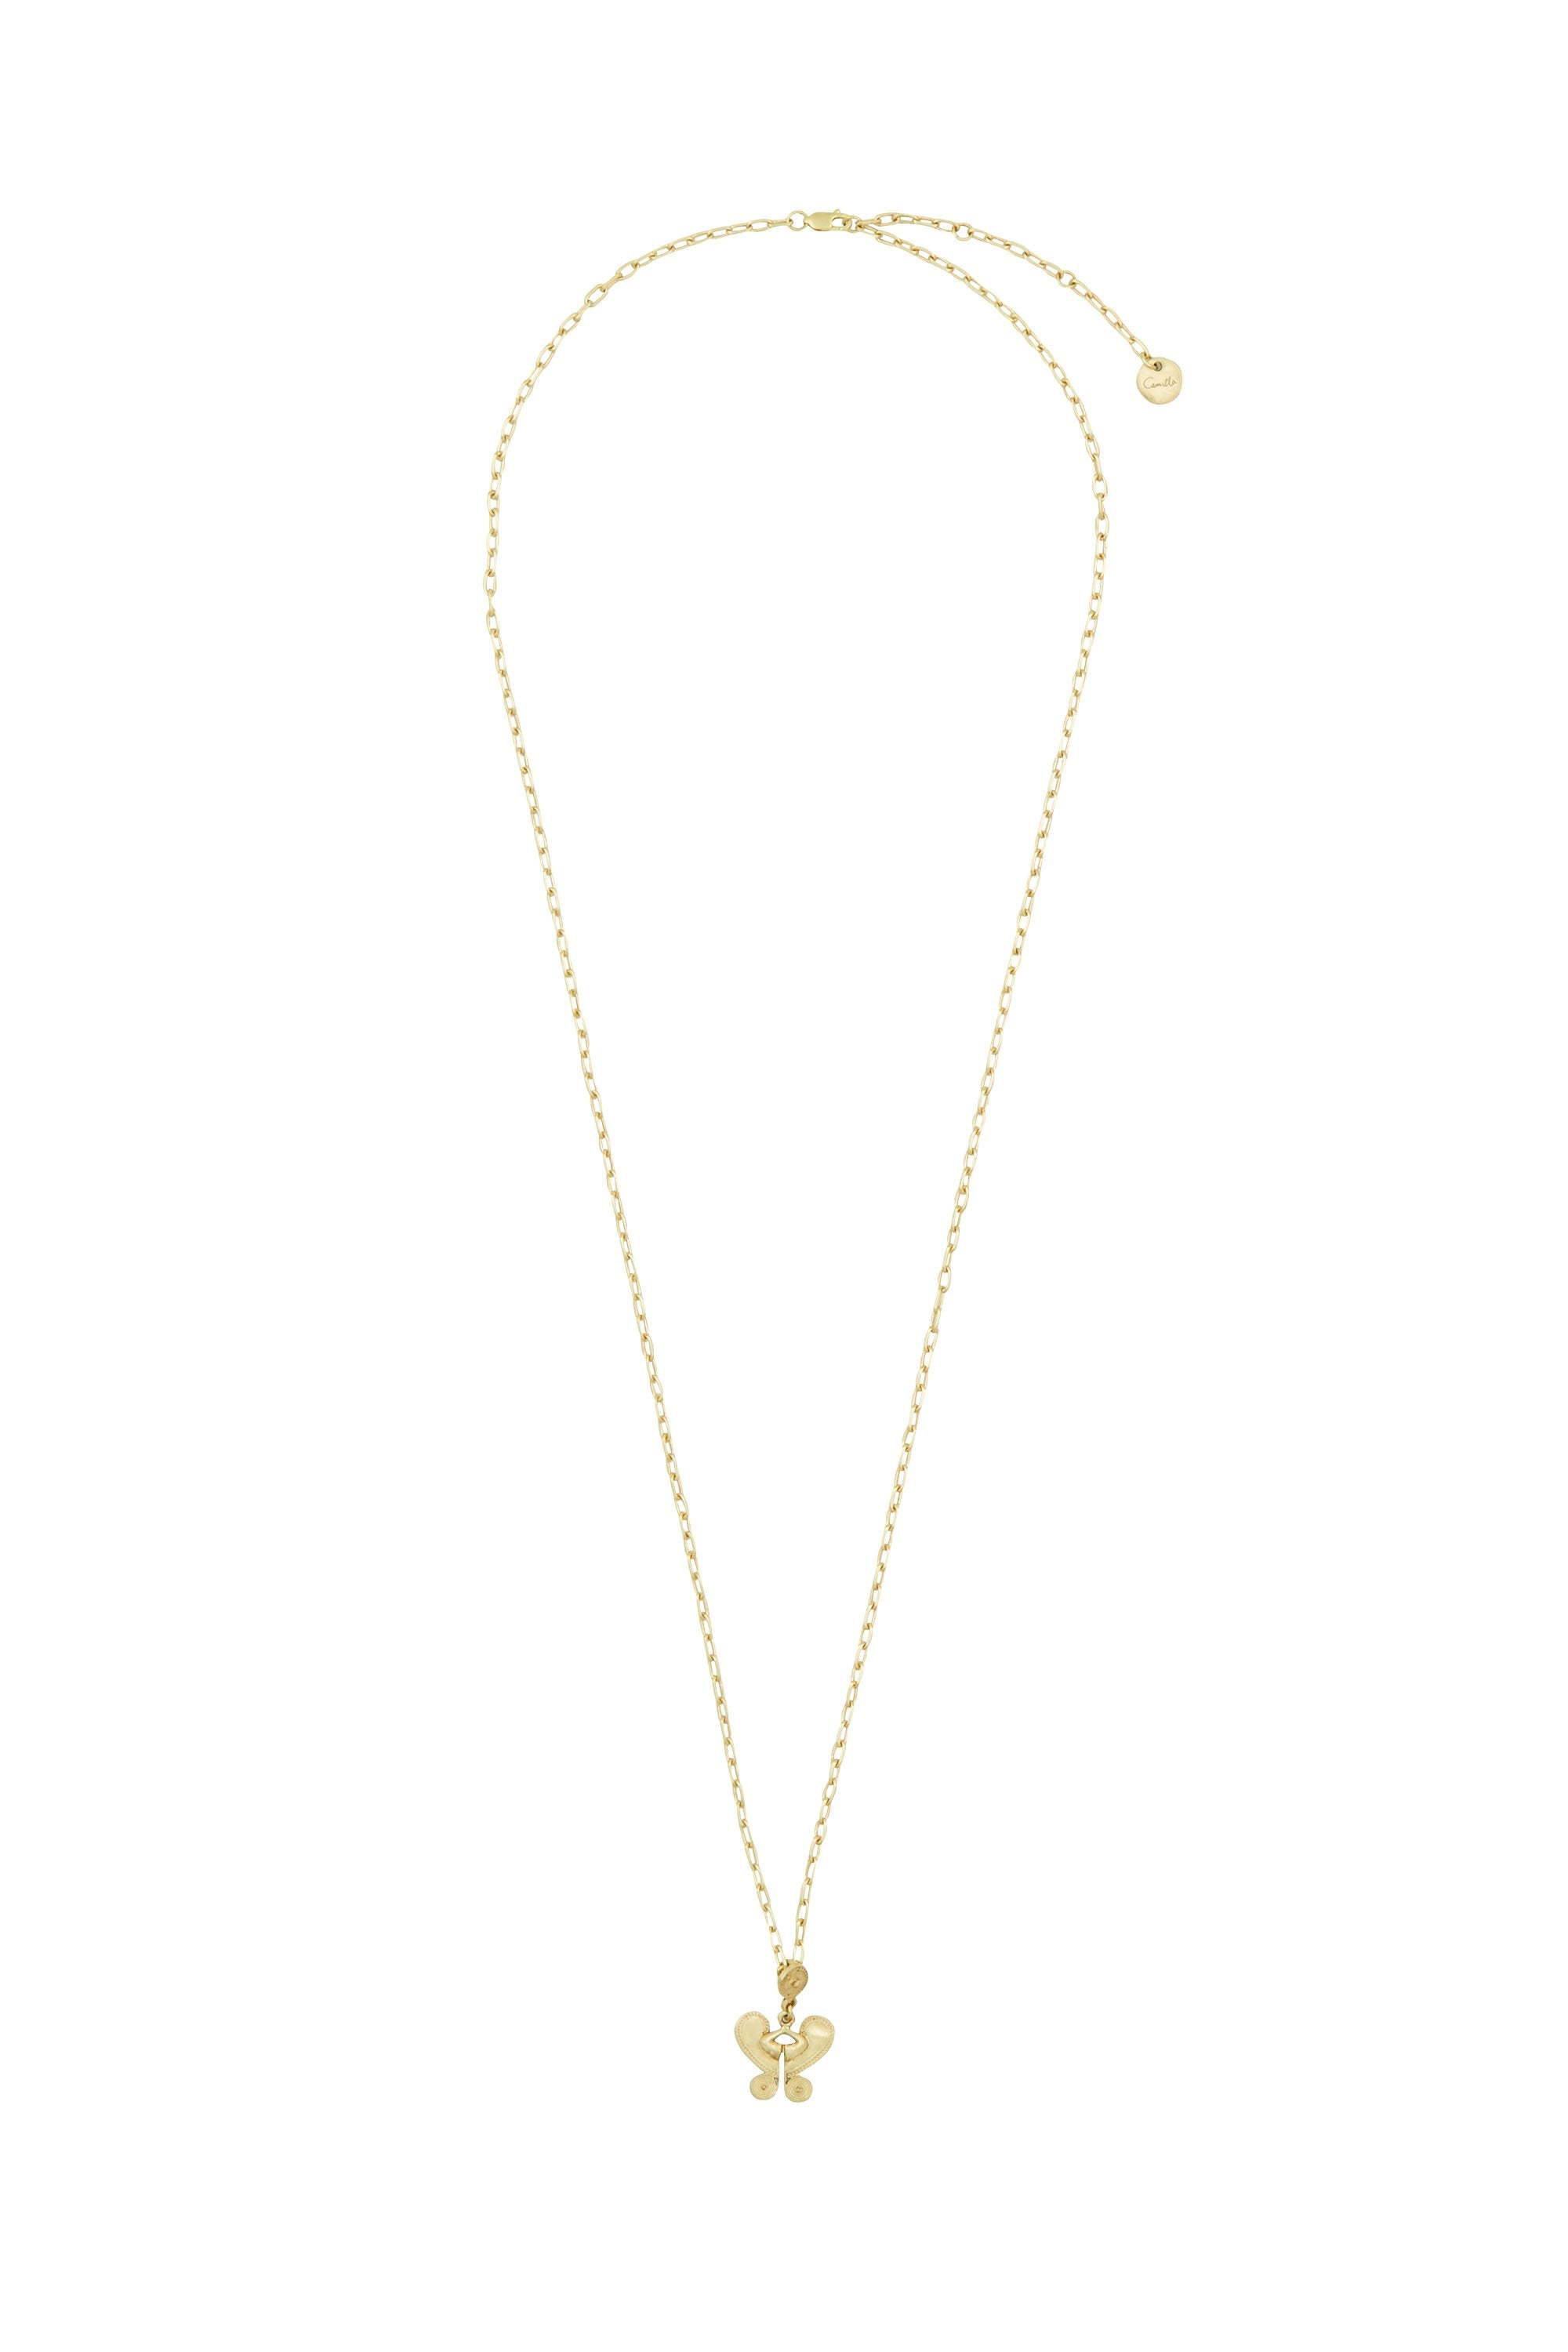 GOLD BRASS ETCHED MOTIF NECKLACE